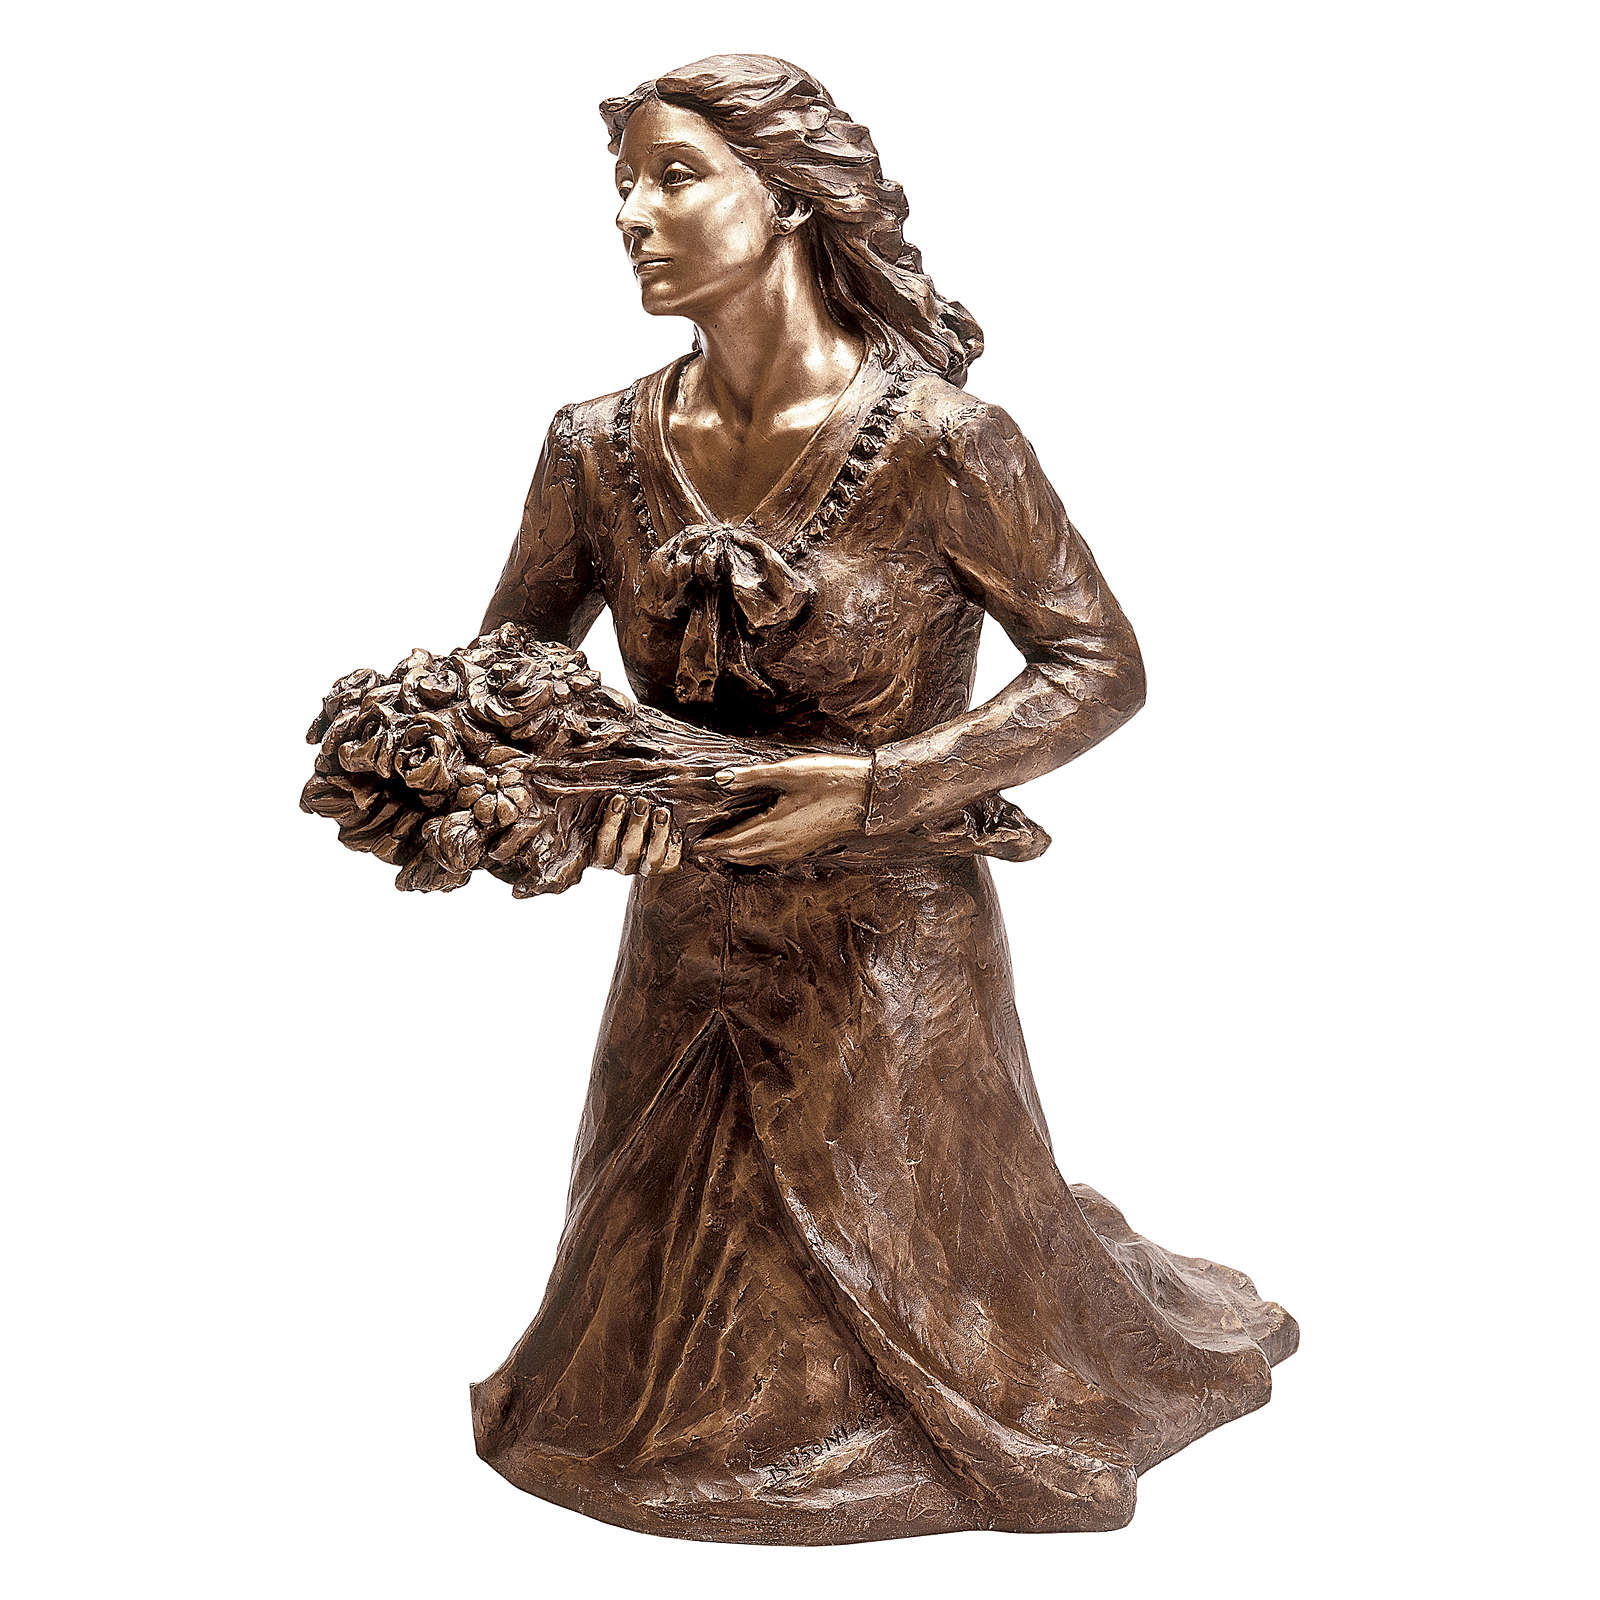 Statue of kneeling woman with flowers in bronze 45 cm for EXTERNAL USE 4